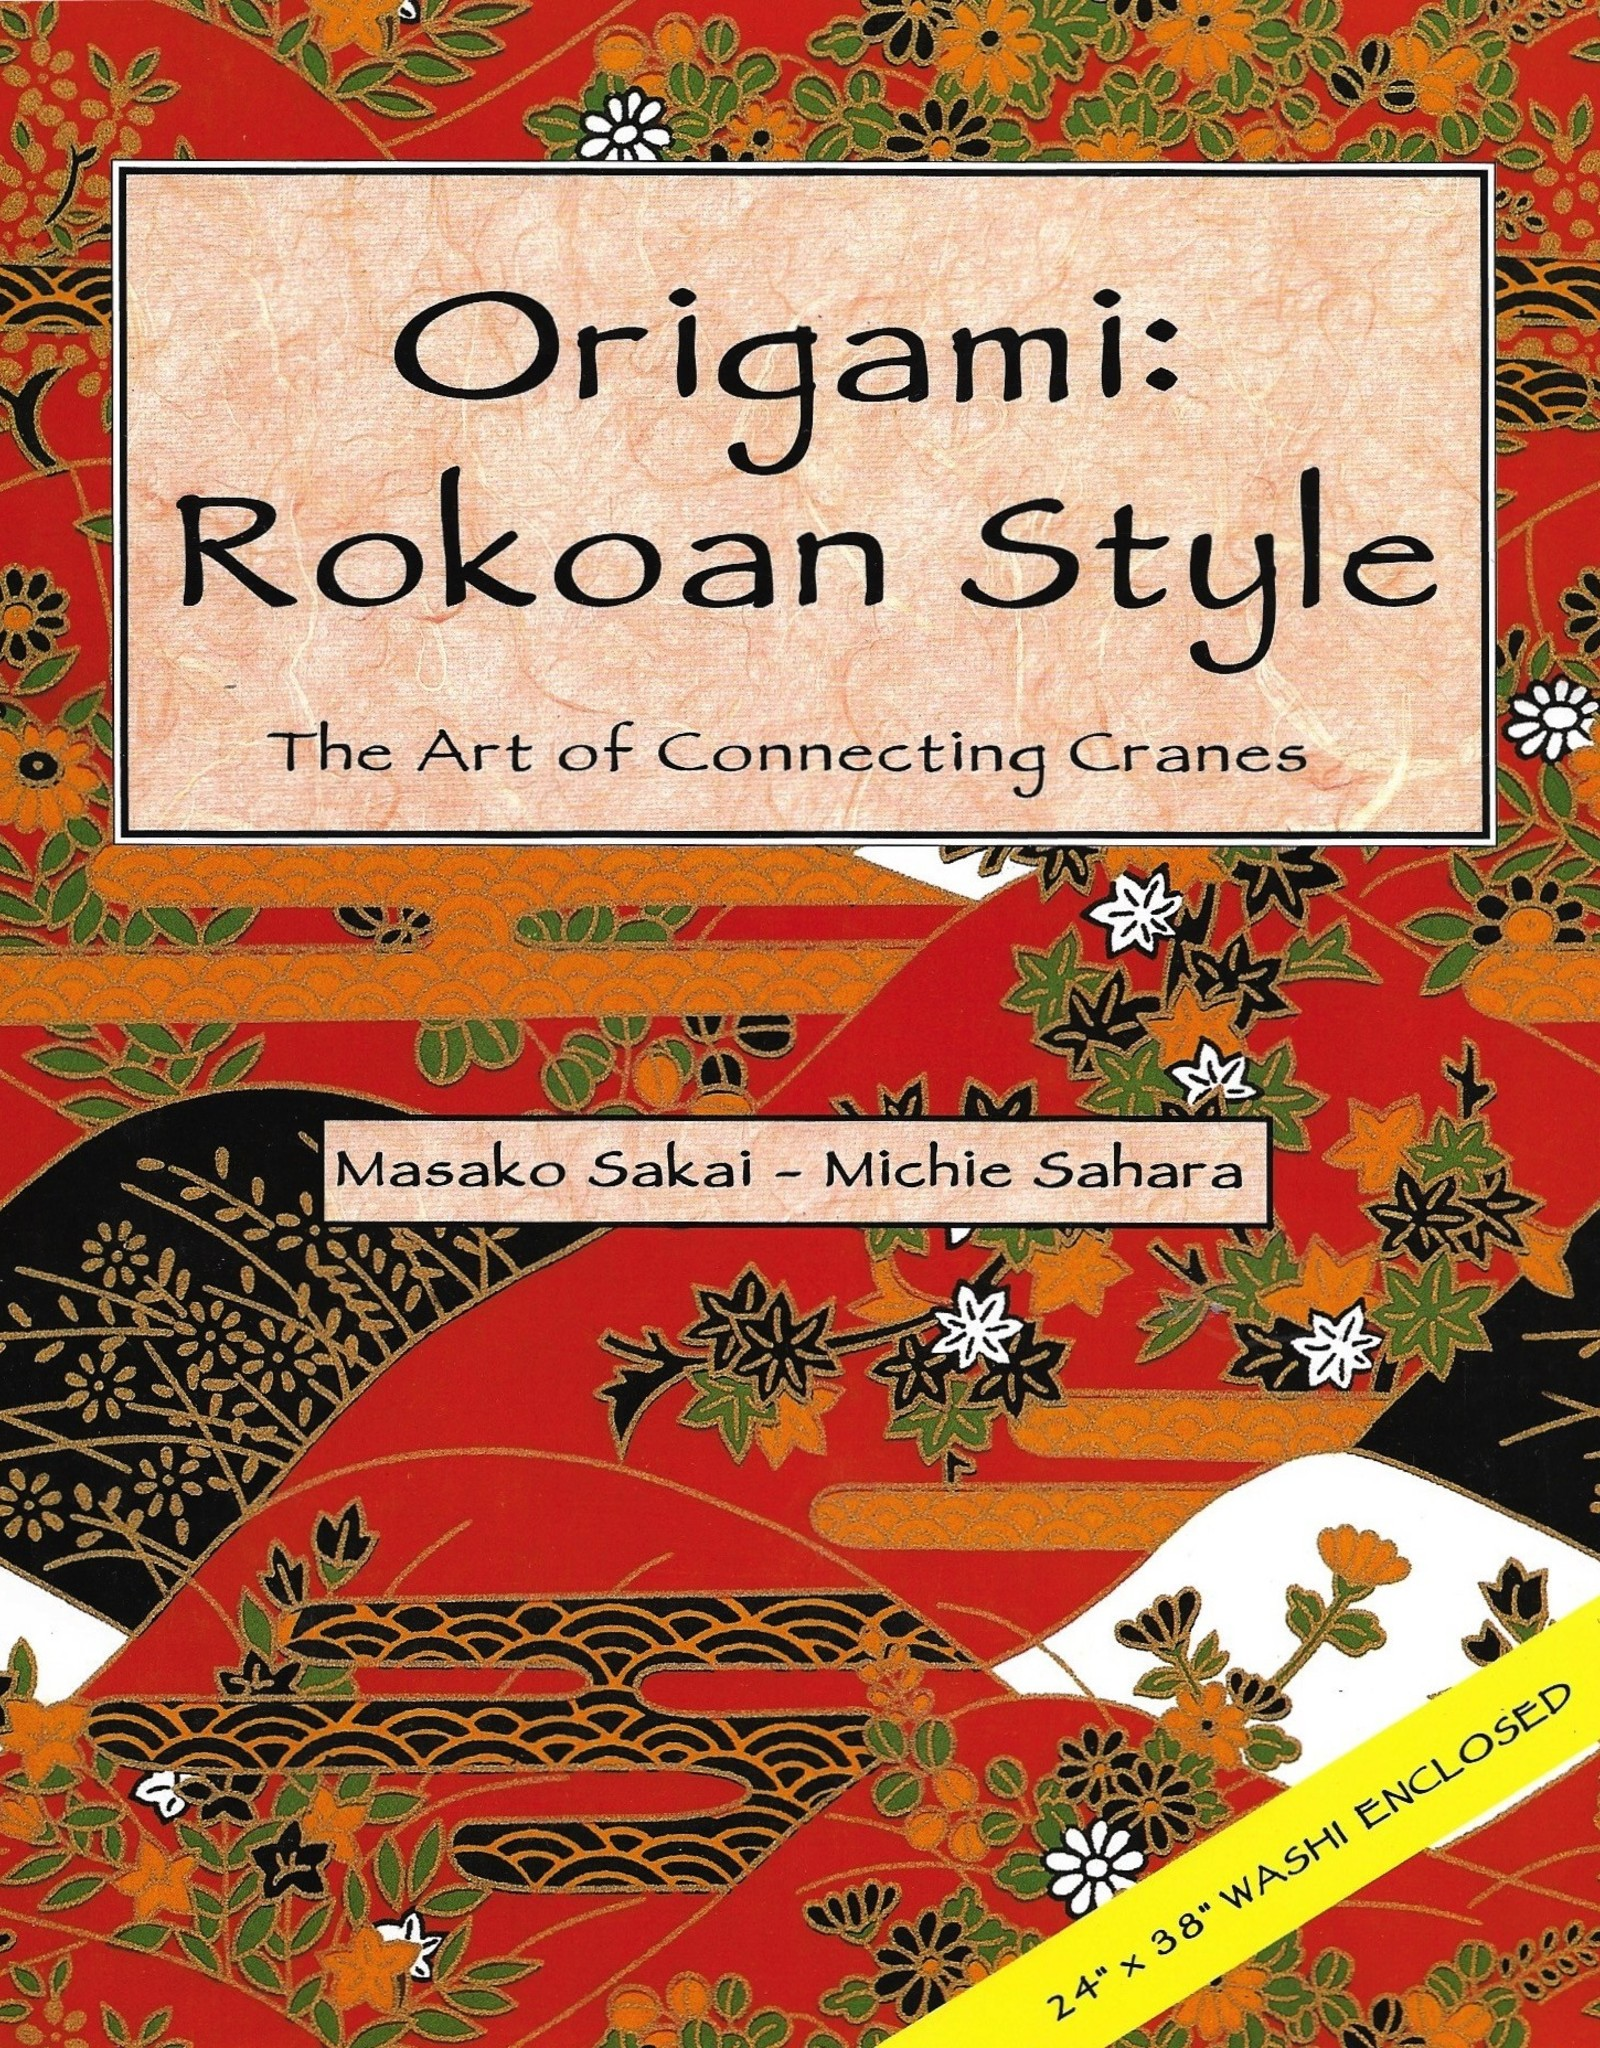 Origami: Rokoan Style: The Art of Connecting Cranes